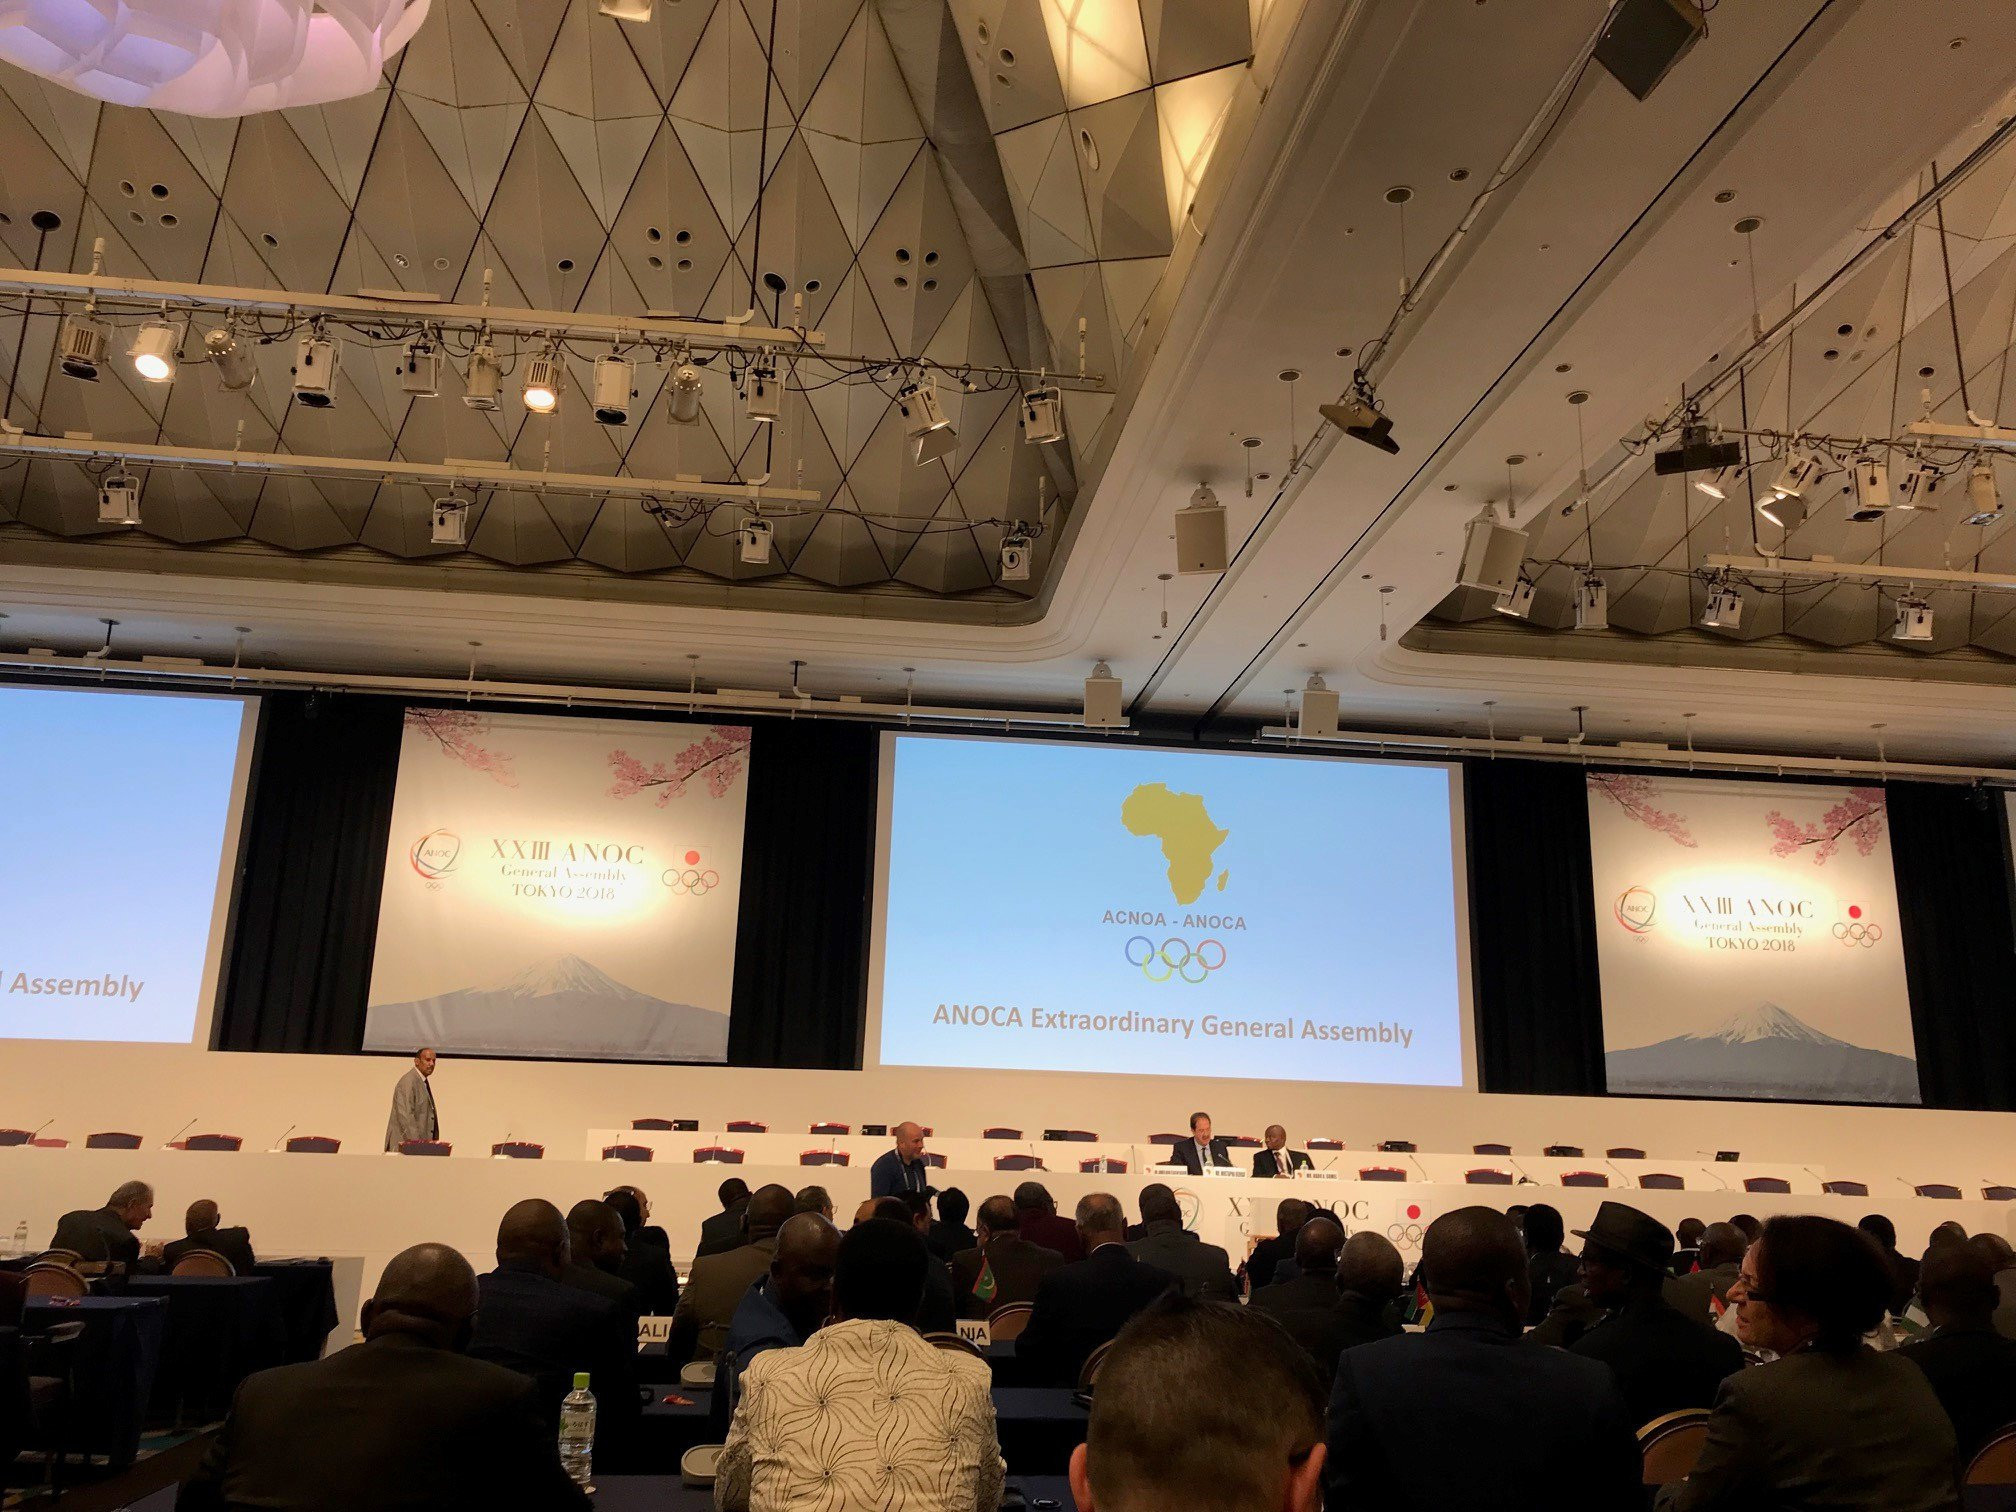 Mustapha Berraf was elected ANOCA President during the continental governing body's Extraordinary General Assembly in Tokyo last week ©ITG